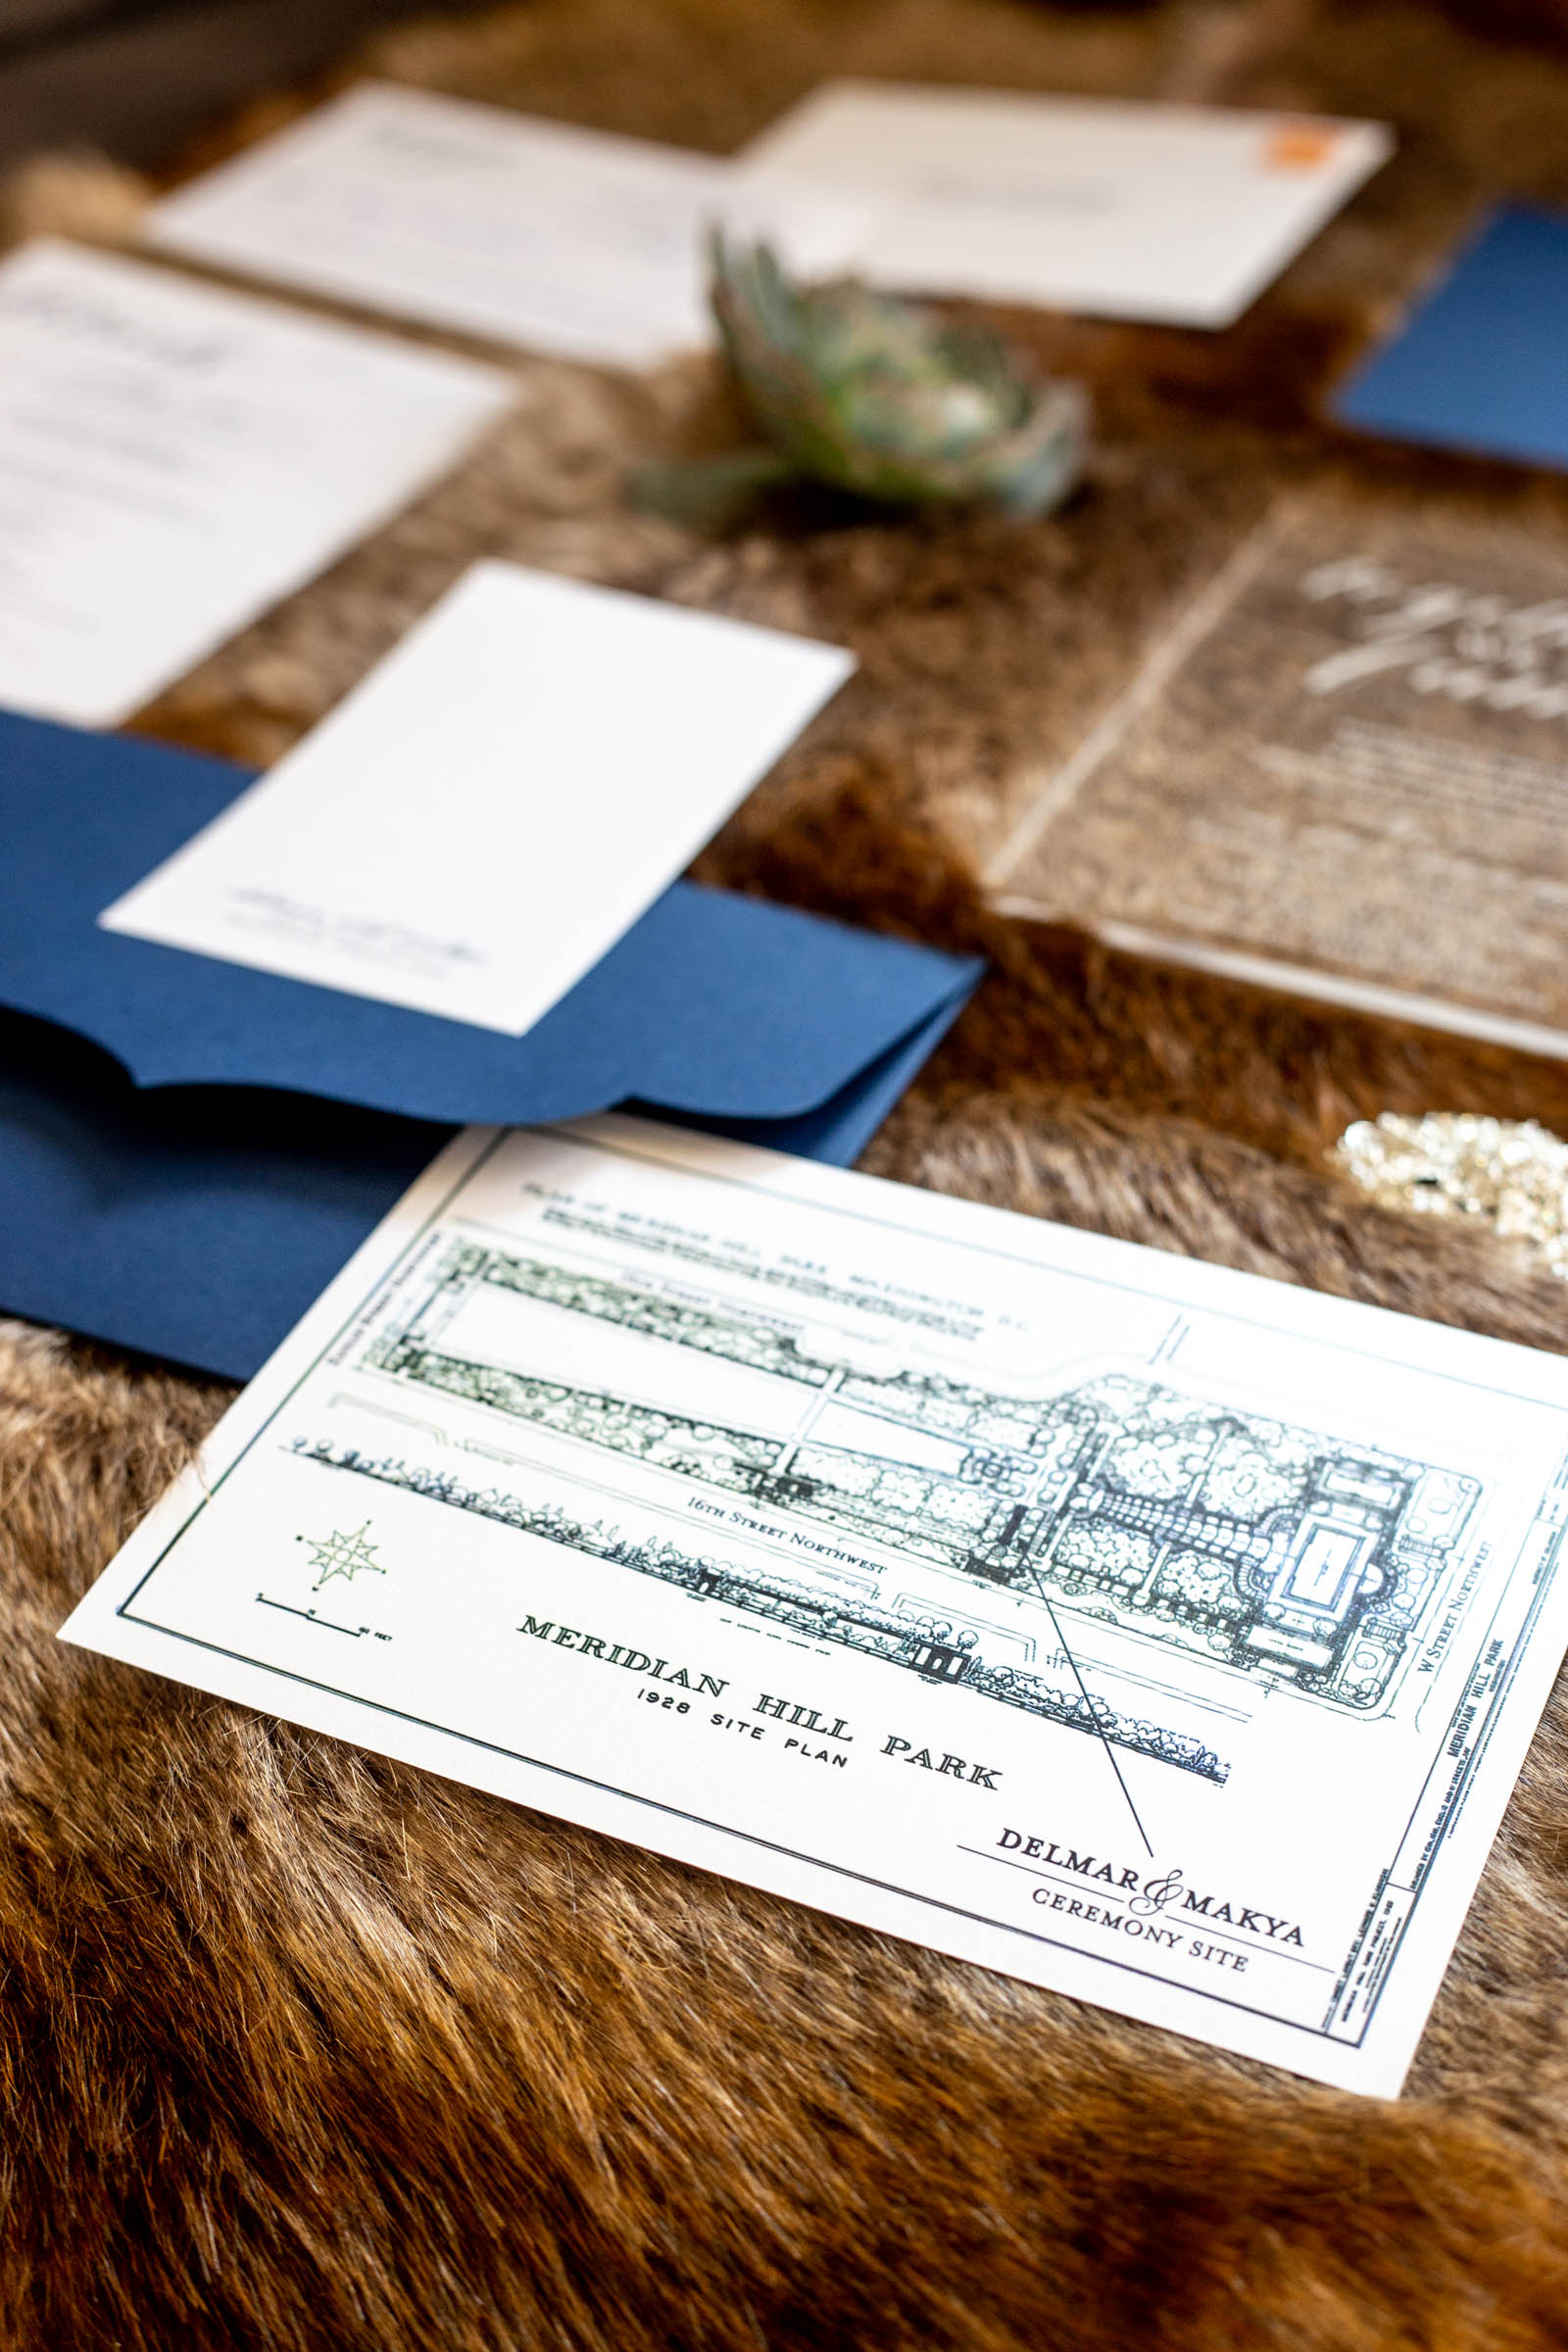 Acrylic Wedding Invitation Suite featuring enclosure of vintage Meridian Hill Park Map